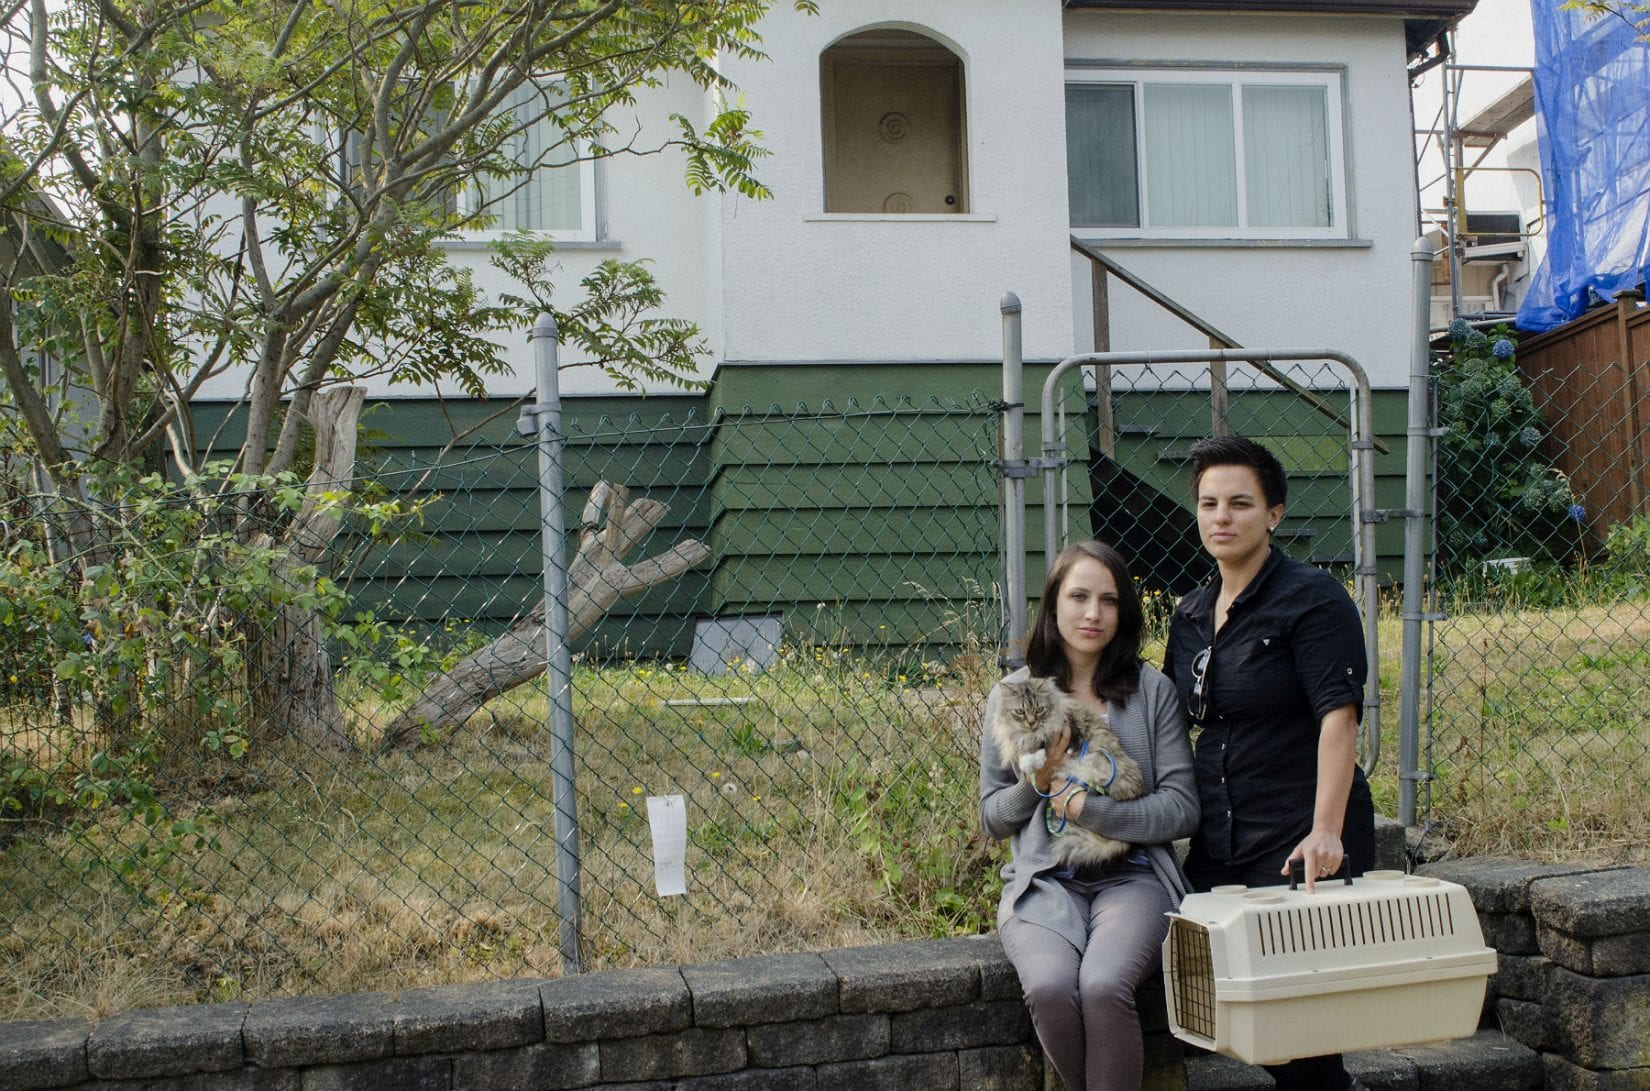 Cat and two women outside of a house